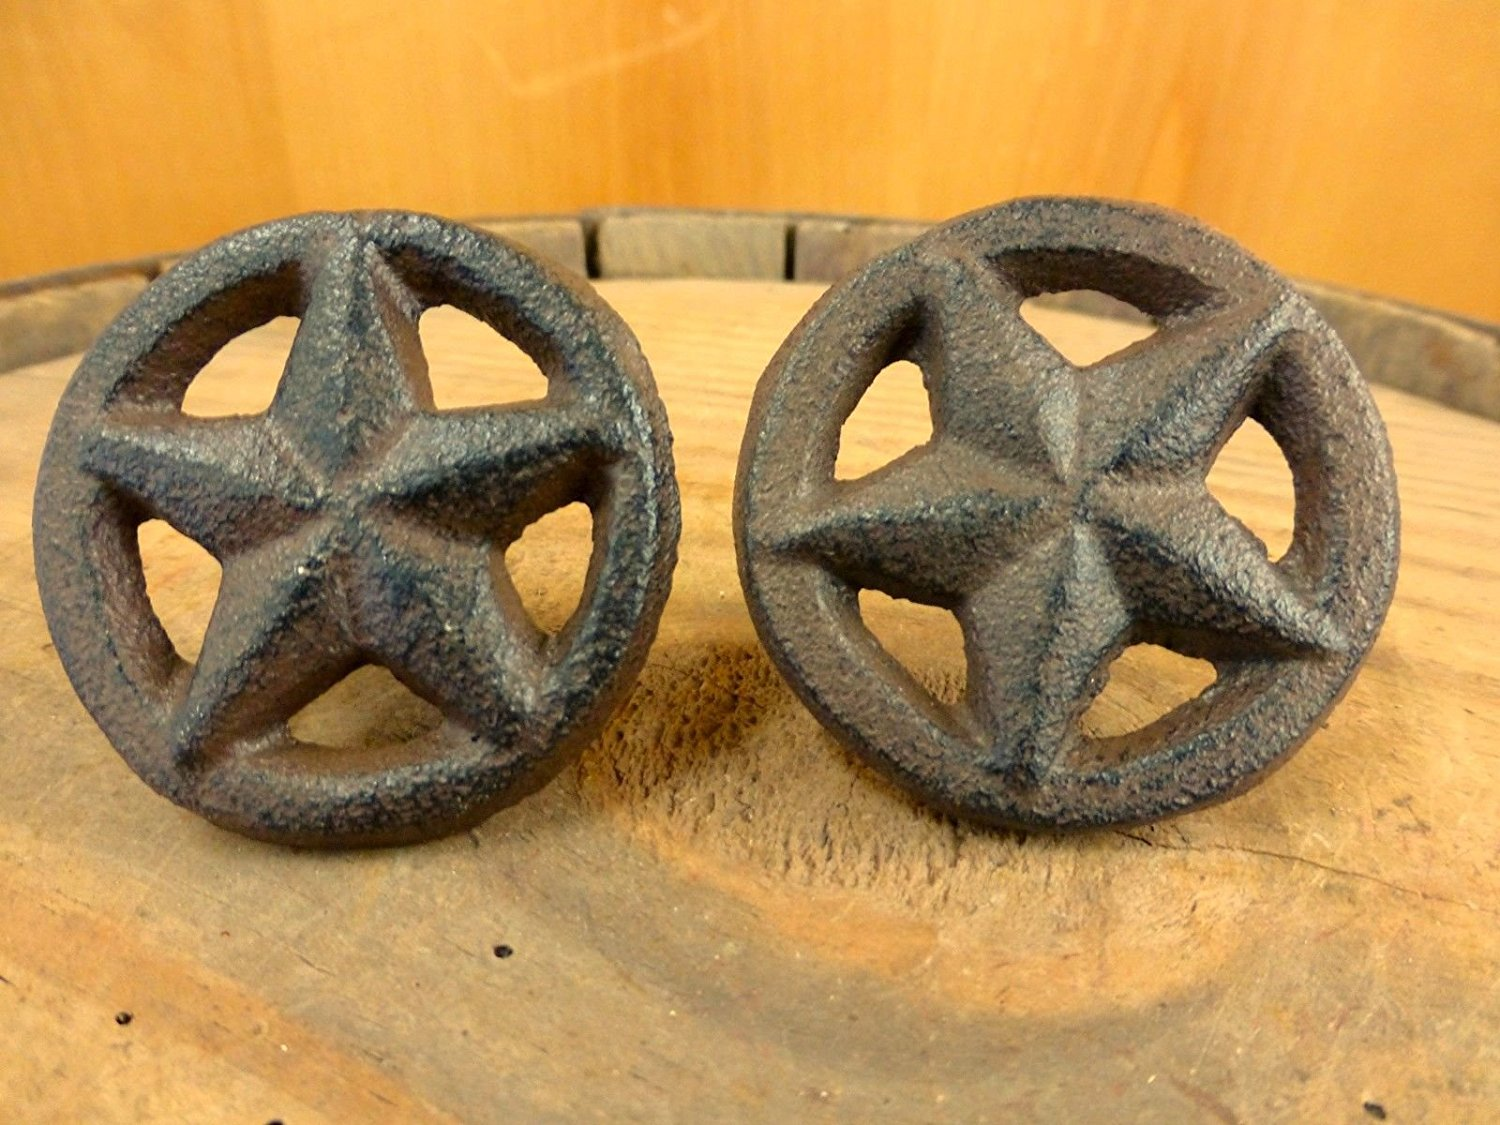 Get Quotations · 2 BROWN RUSTIC STAR DRAWER DOOR PULLS KNOBS CAST IRON  CABINET HARDWARE Western